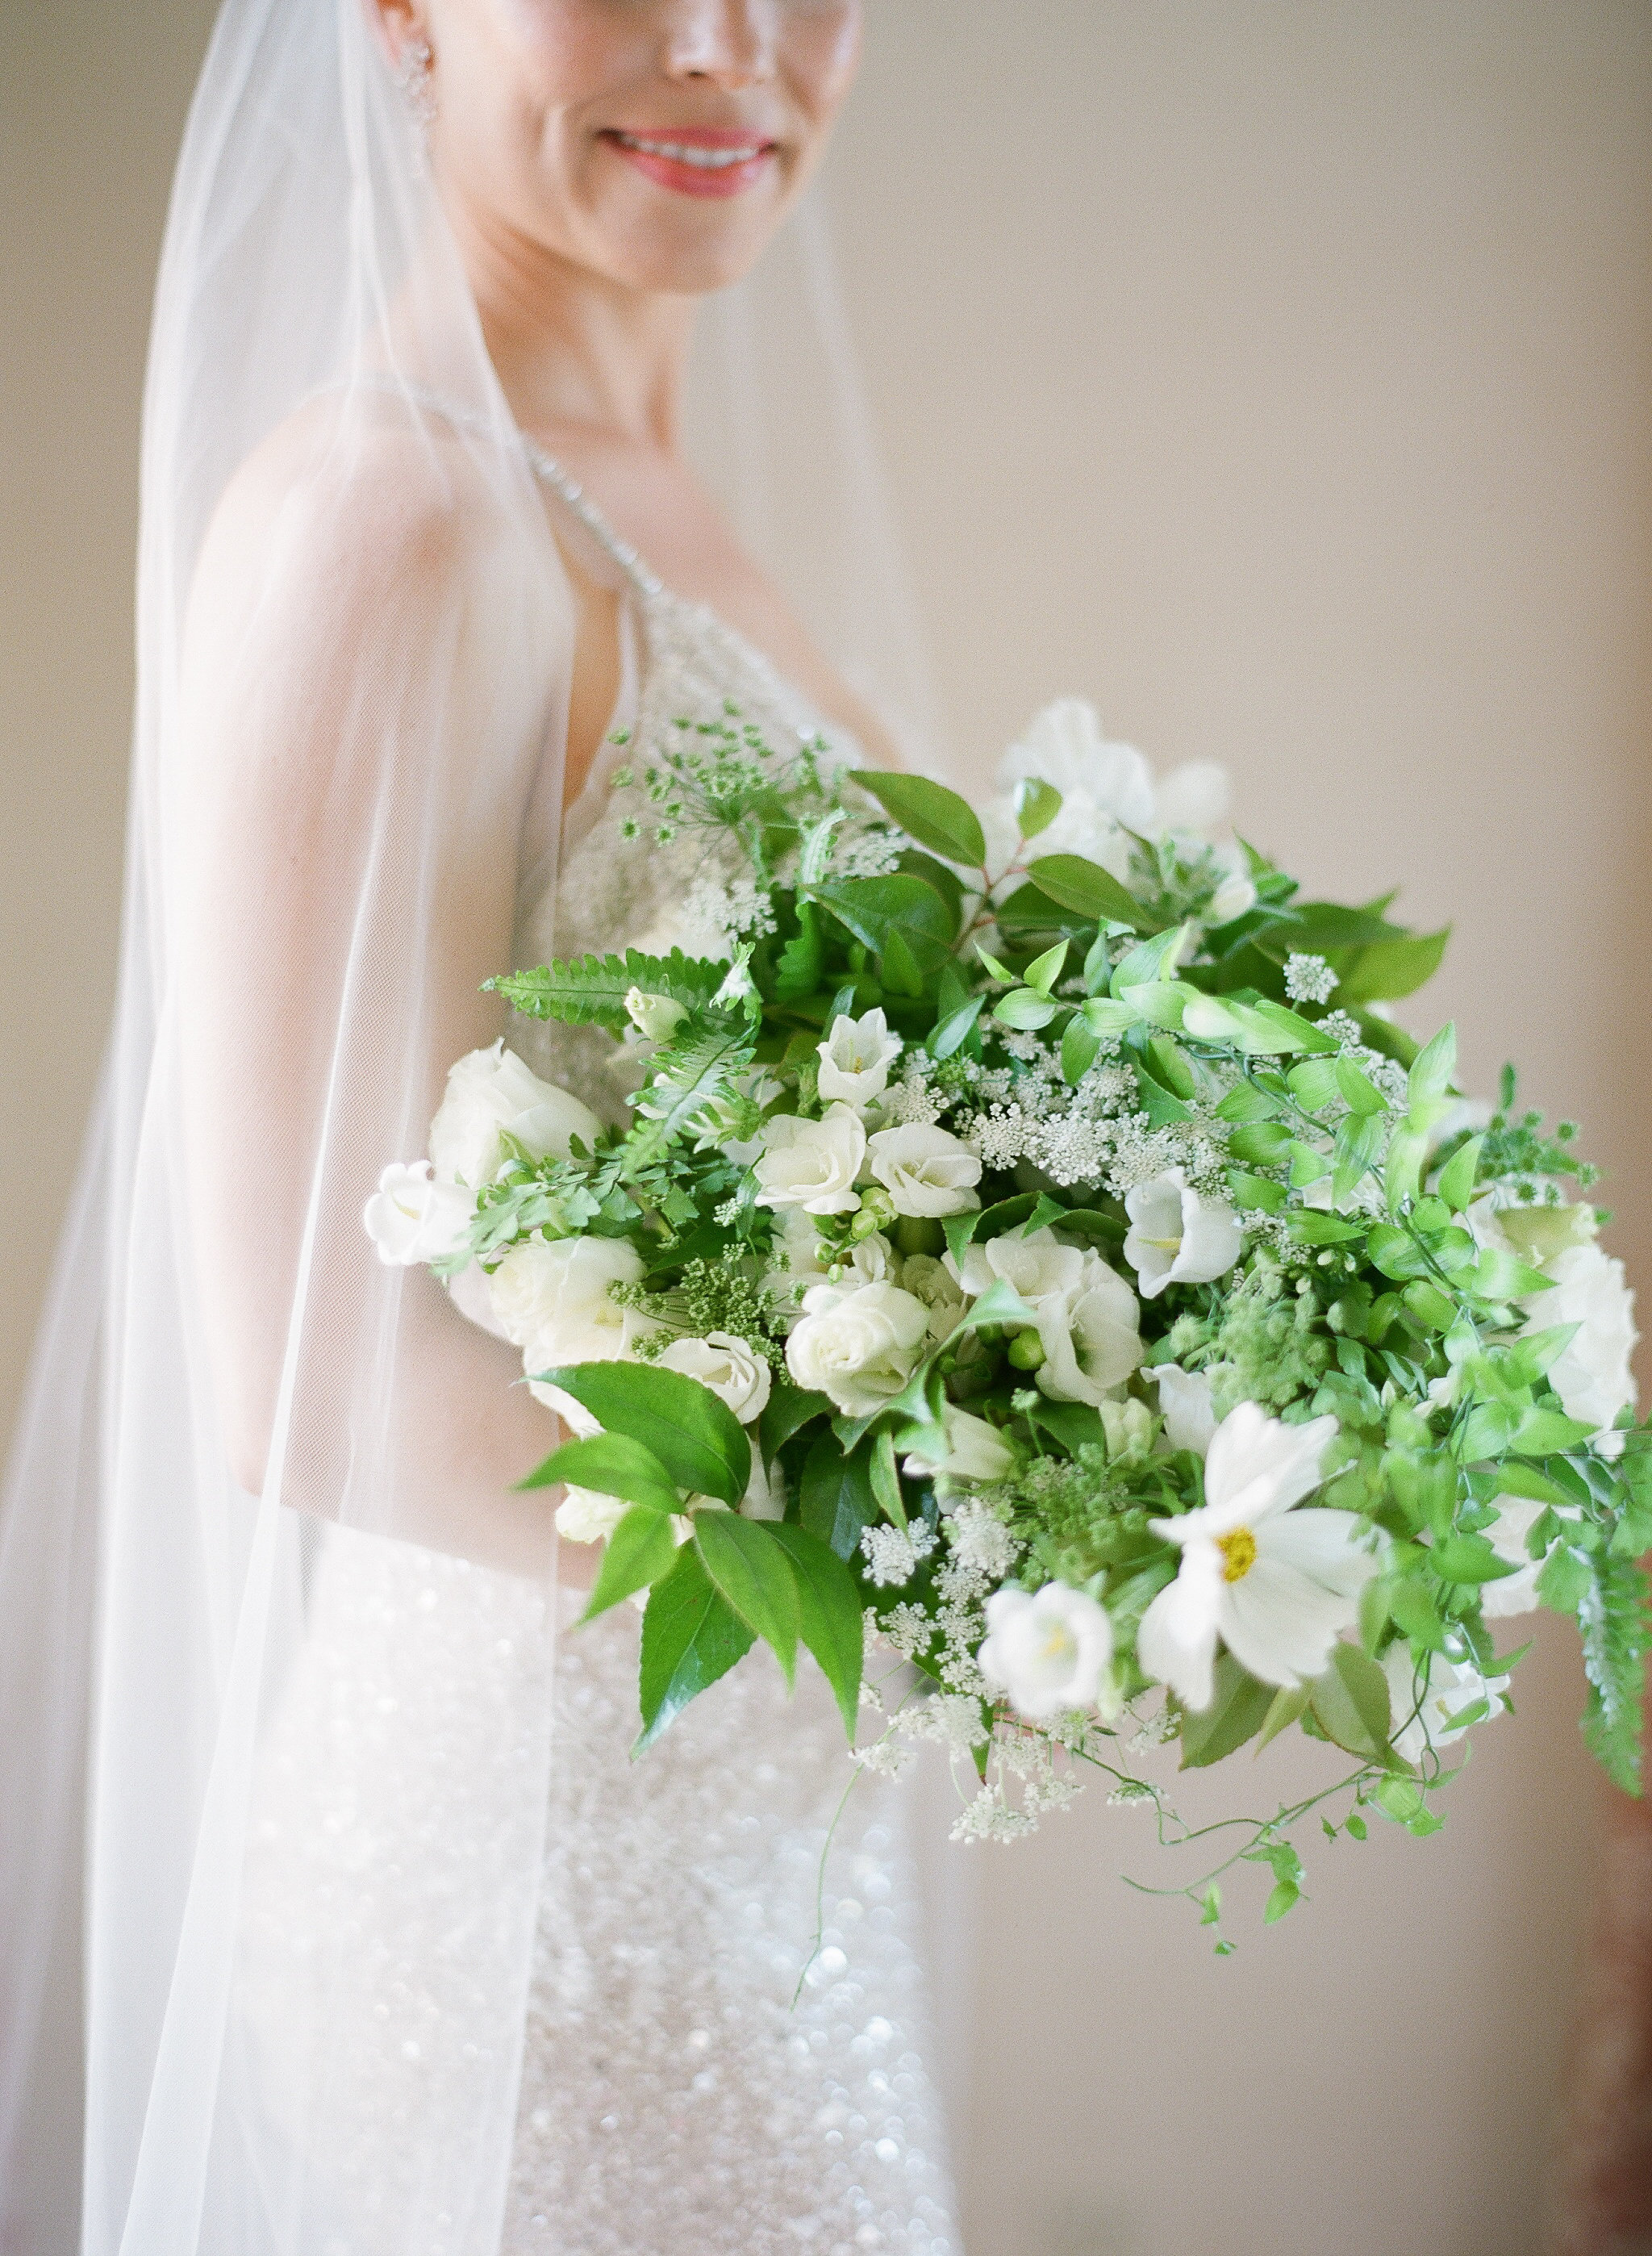 Photography -  Michelle Beller Photography   White Cosmos - Summer  White Campanula - Spring/Summer/Fall  White Freesia - Year Round  White Lisianthus - Year Round  Queen Annes Lace - Year Round  Variegated Fern - Year Round